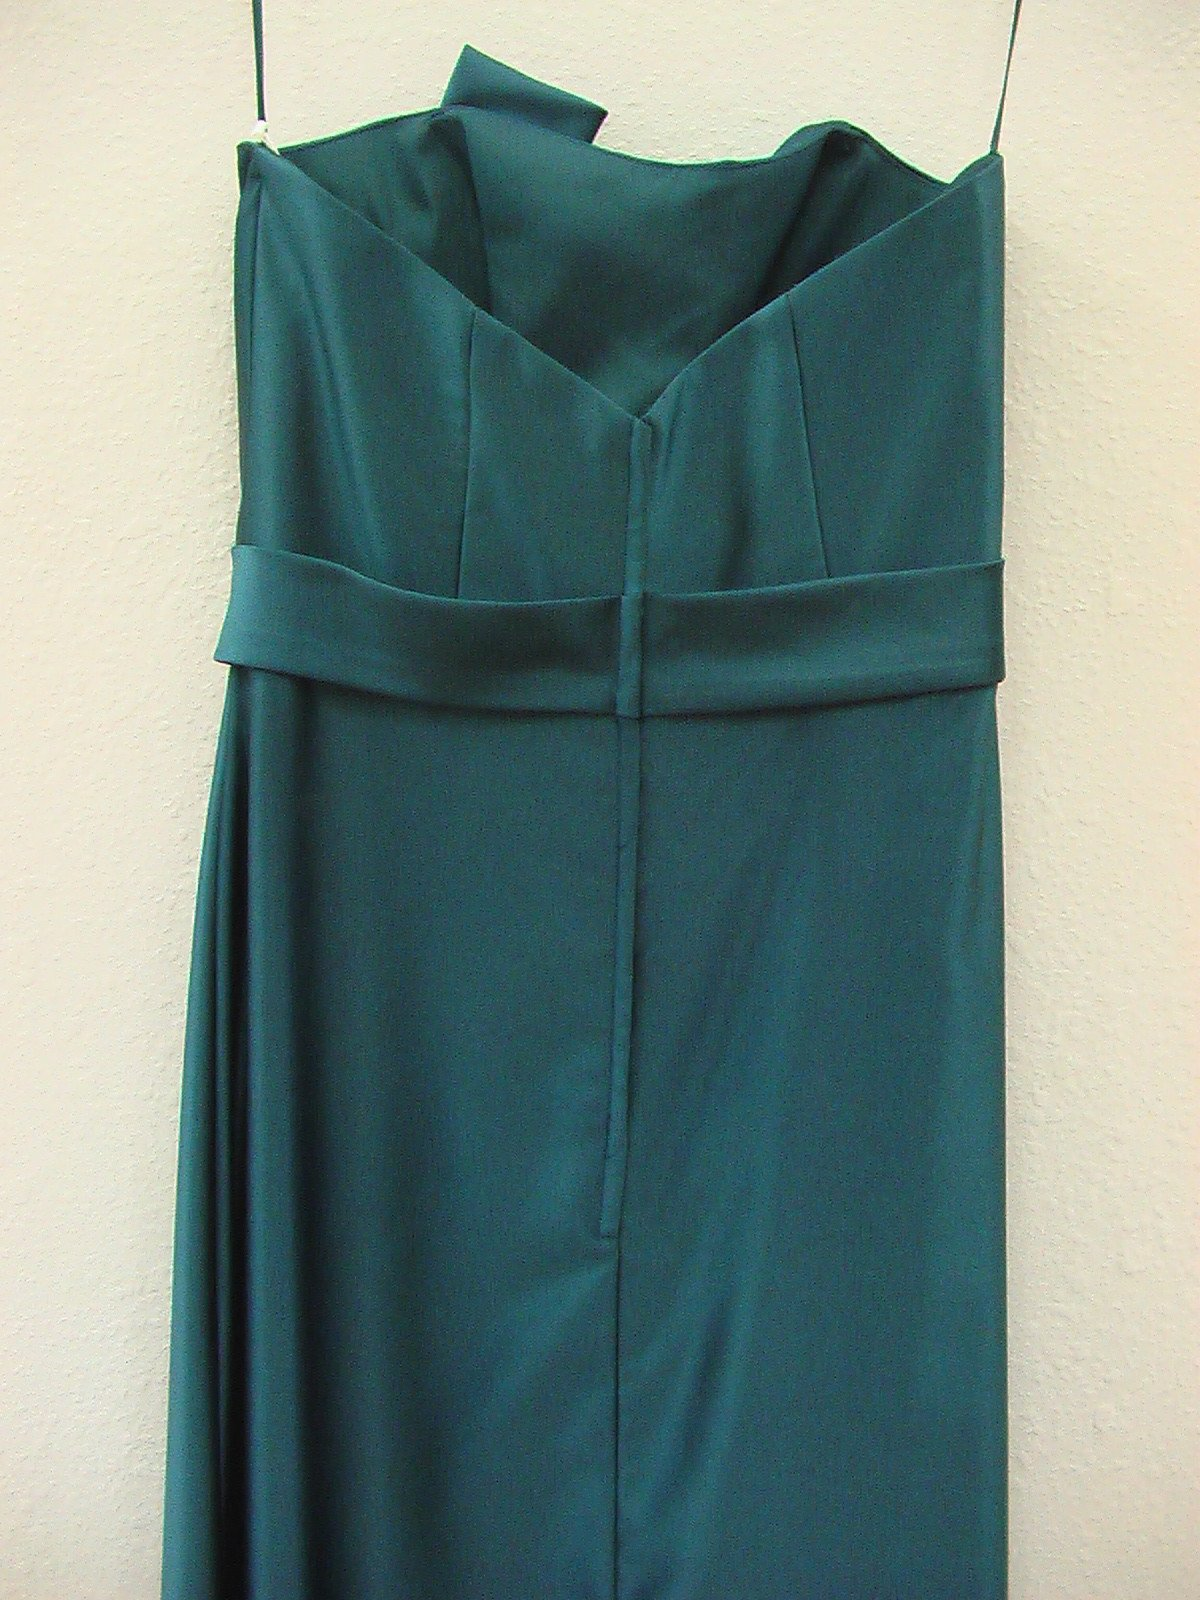 Allure 1263 Pine Size 8 In Stock Bridesmaid Dress - Tom's Bridal